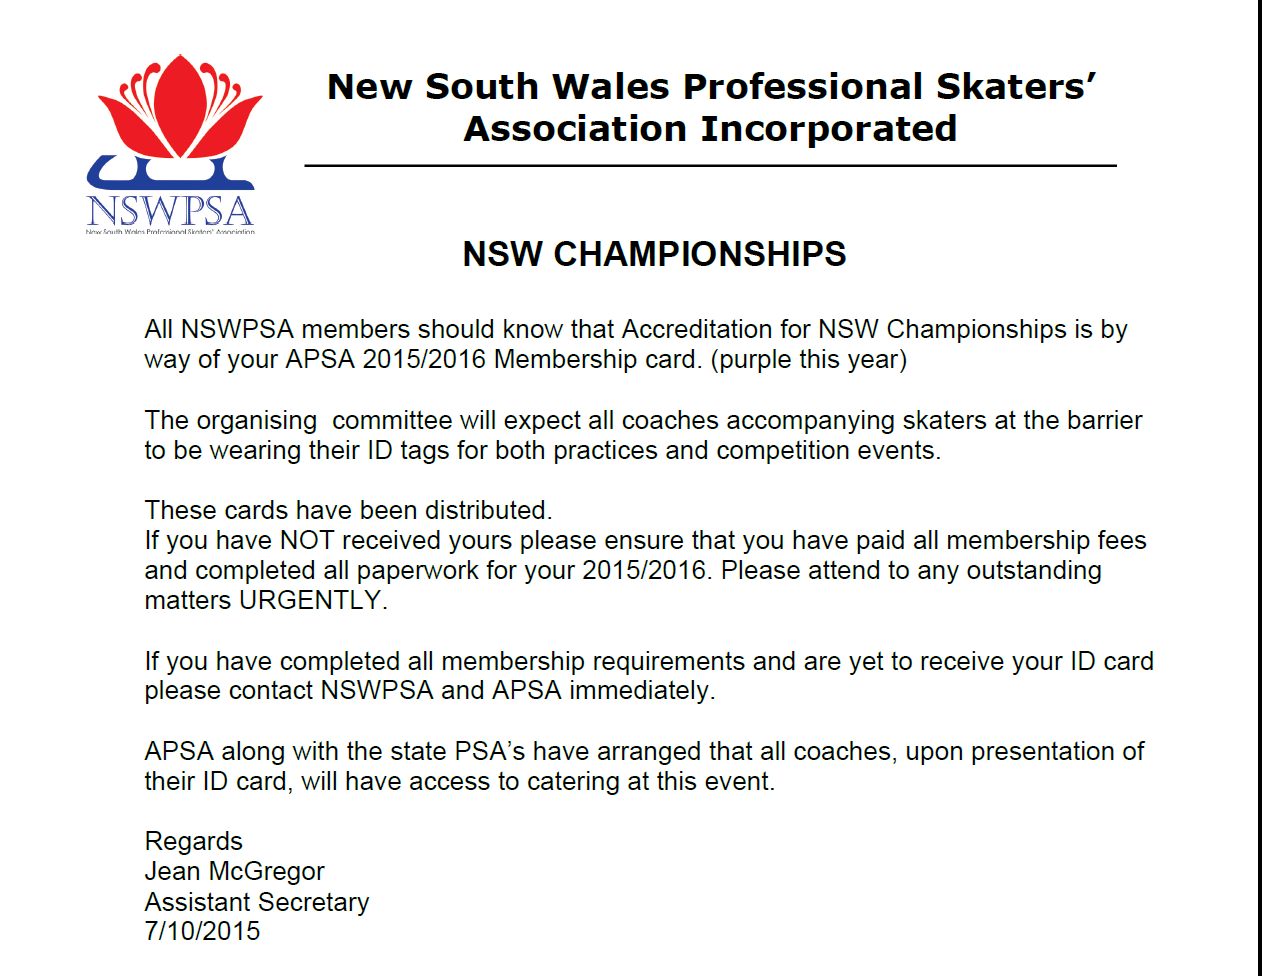 NSW Championships - 2015-16 Accreditation ID Card